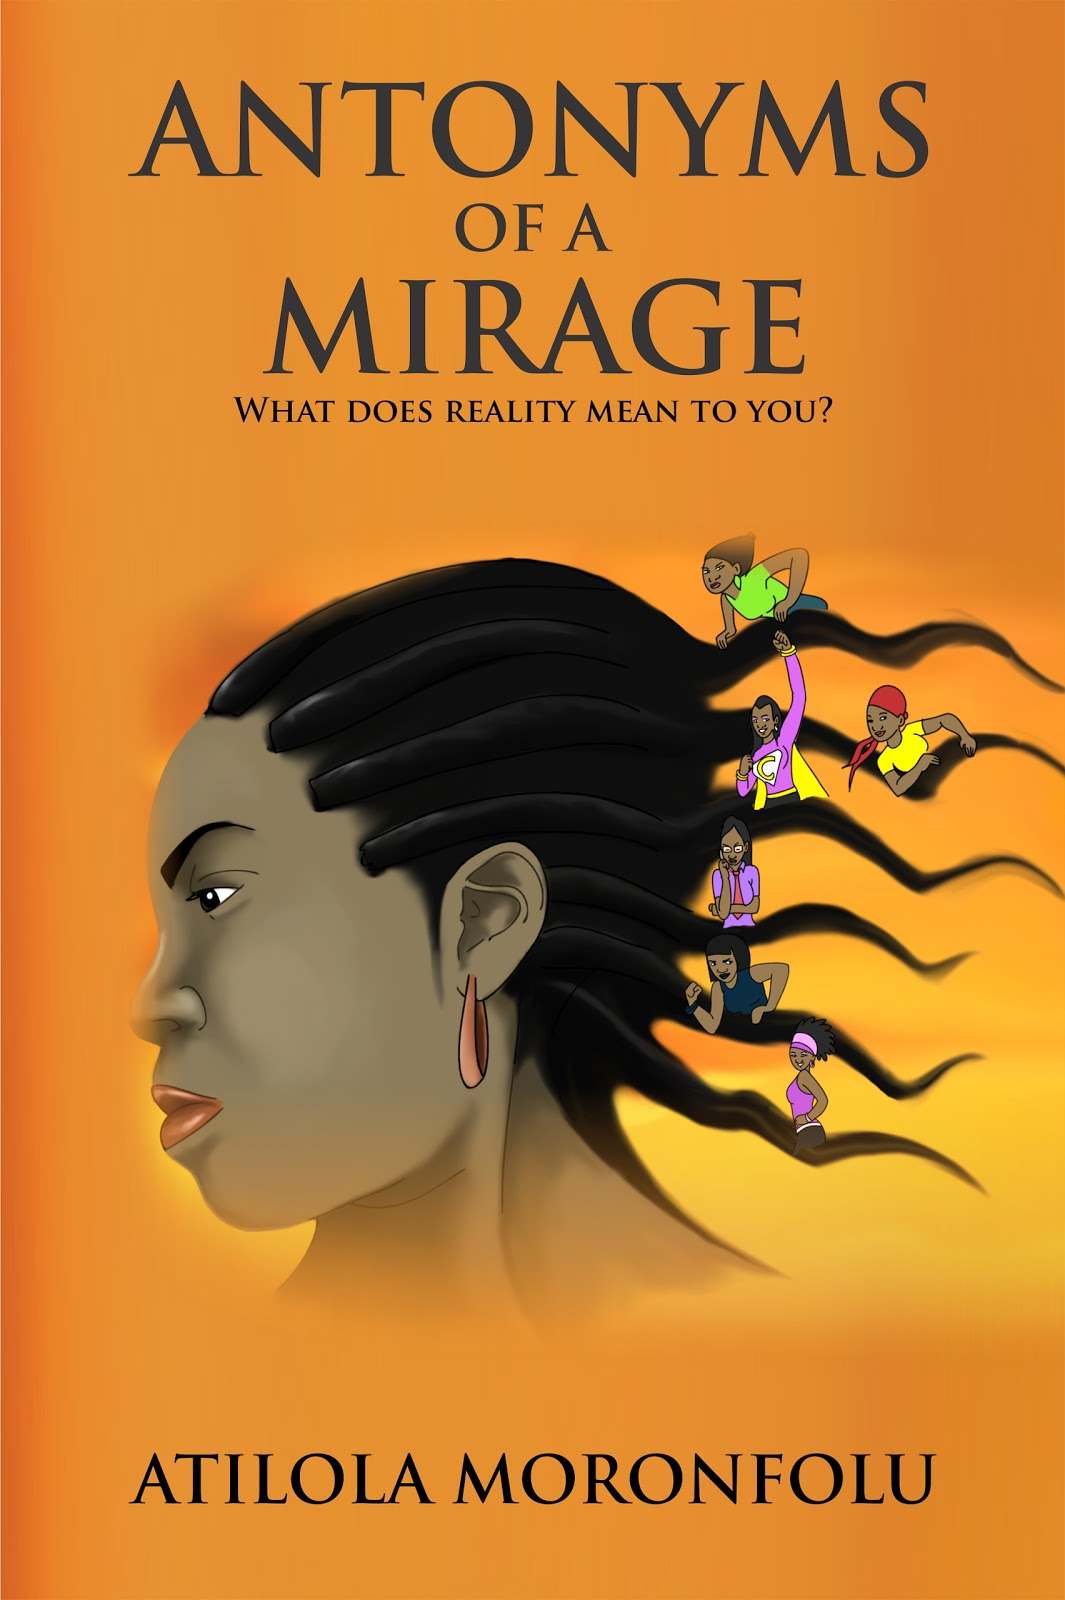 ANTONYMS OF A MIRAGE